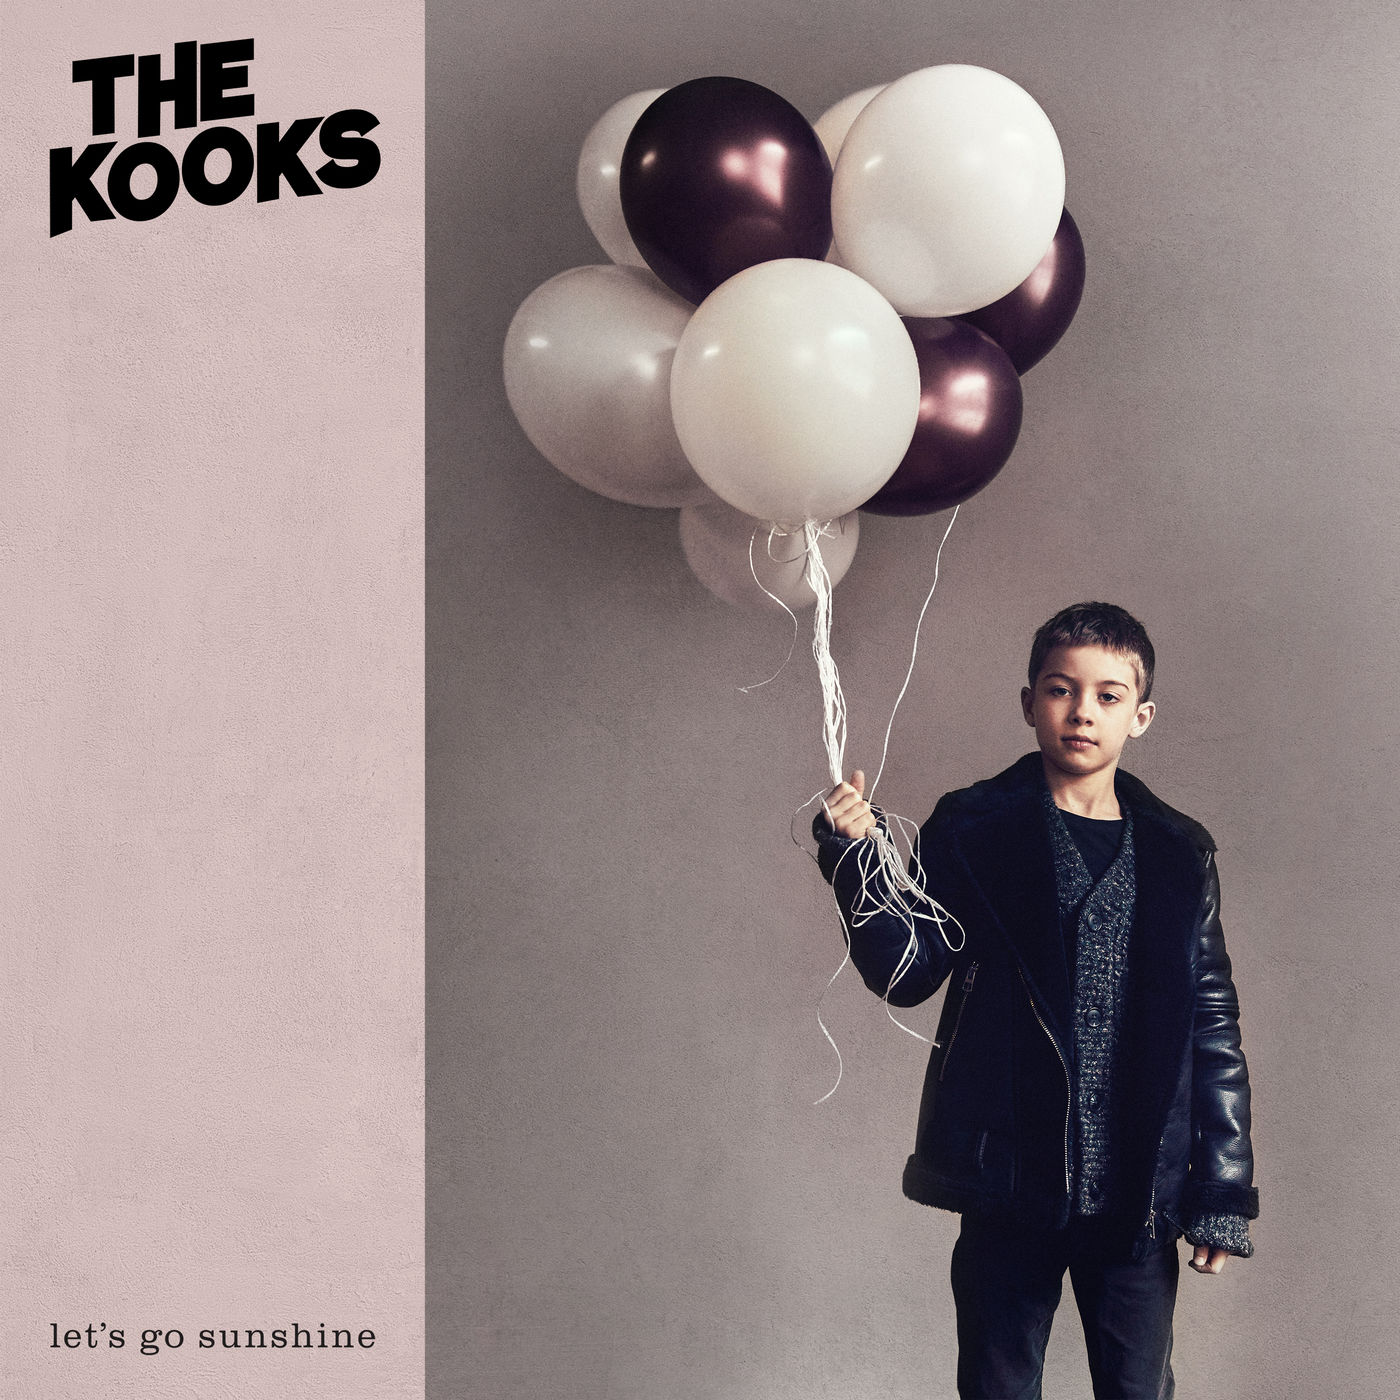 Download torrent The Kooks - Let's Go Sunshine (2018)